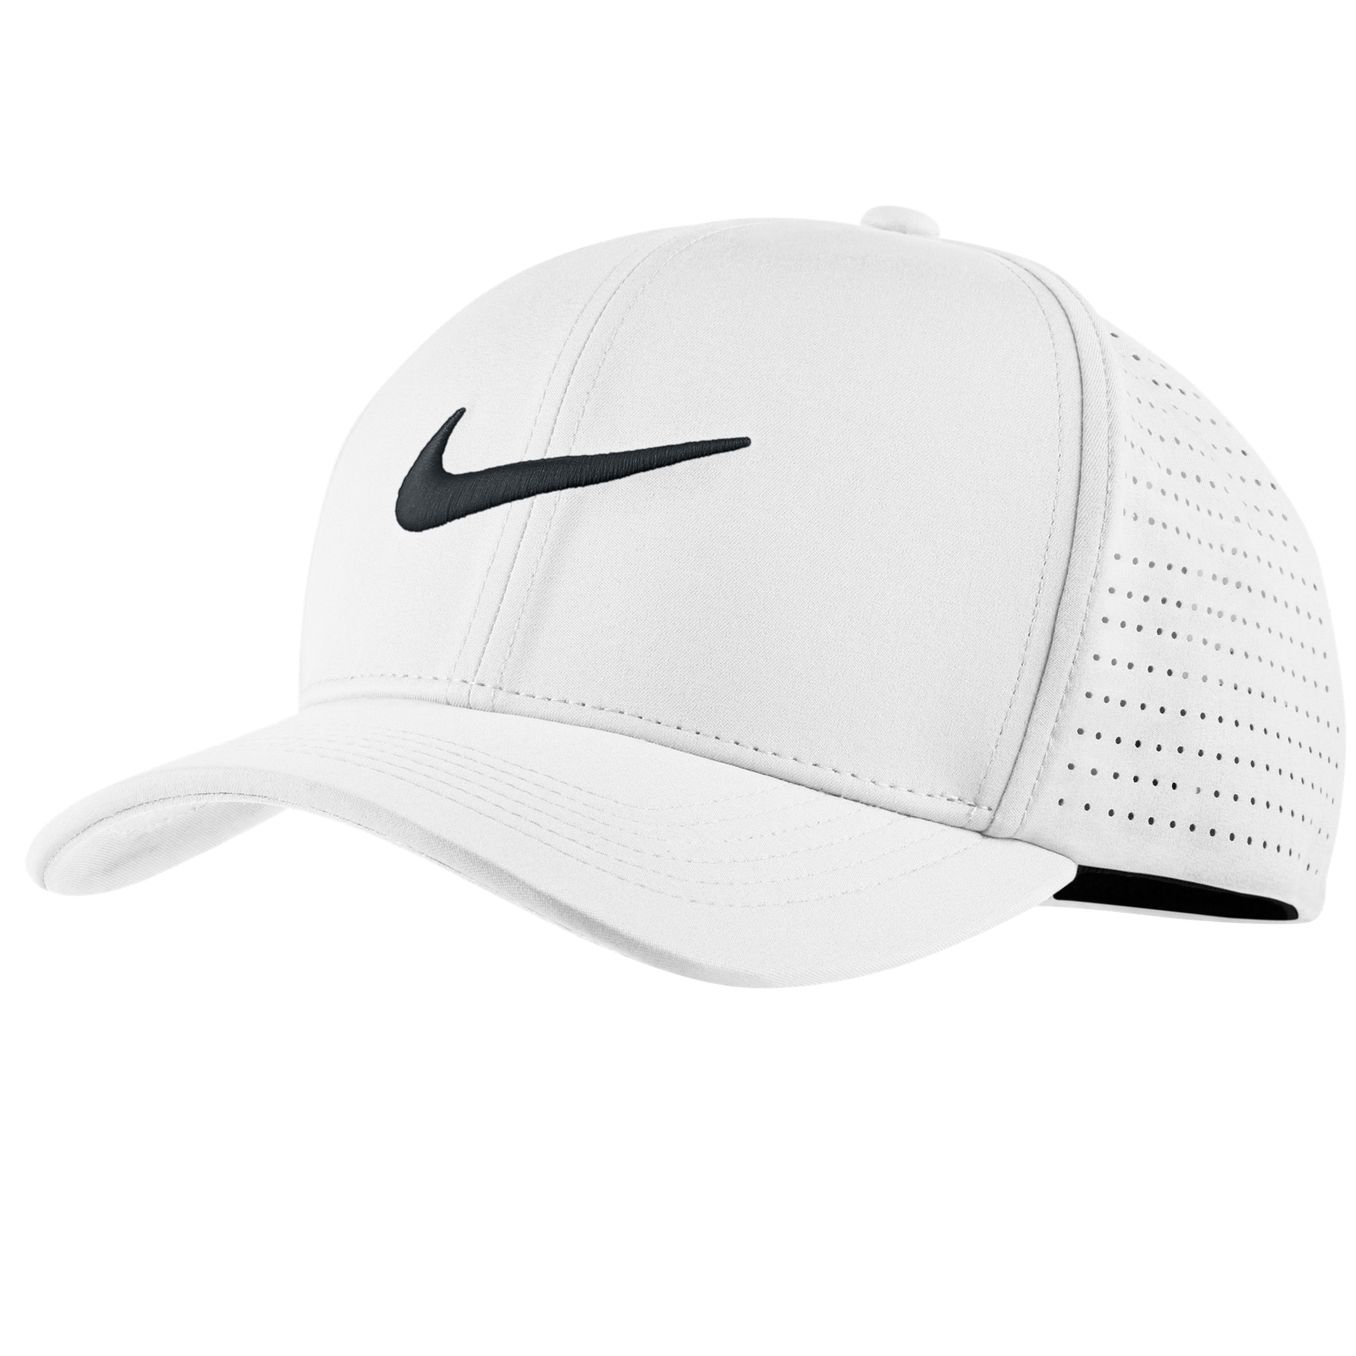 8130b2816 AeroBill Classic99 Golf Cap White | Hats & Visors | Baseball hats ...